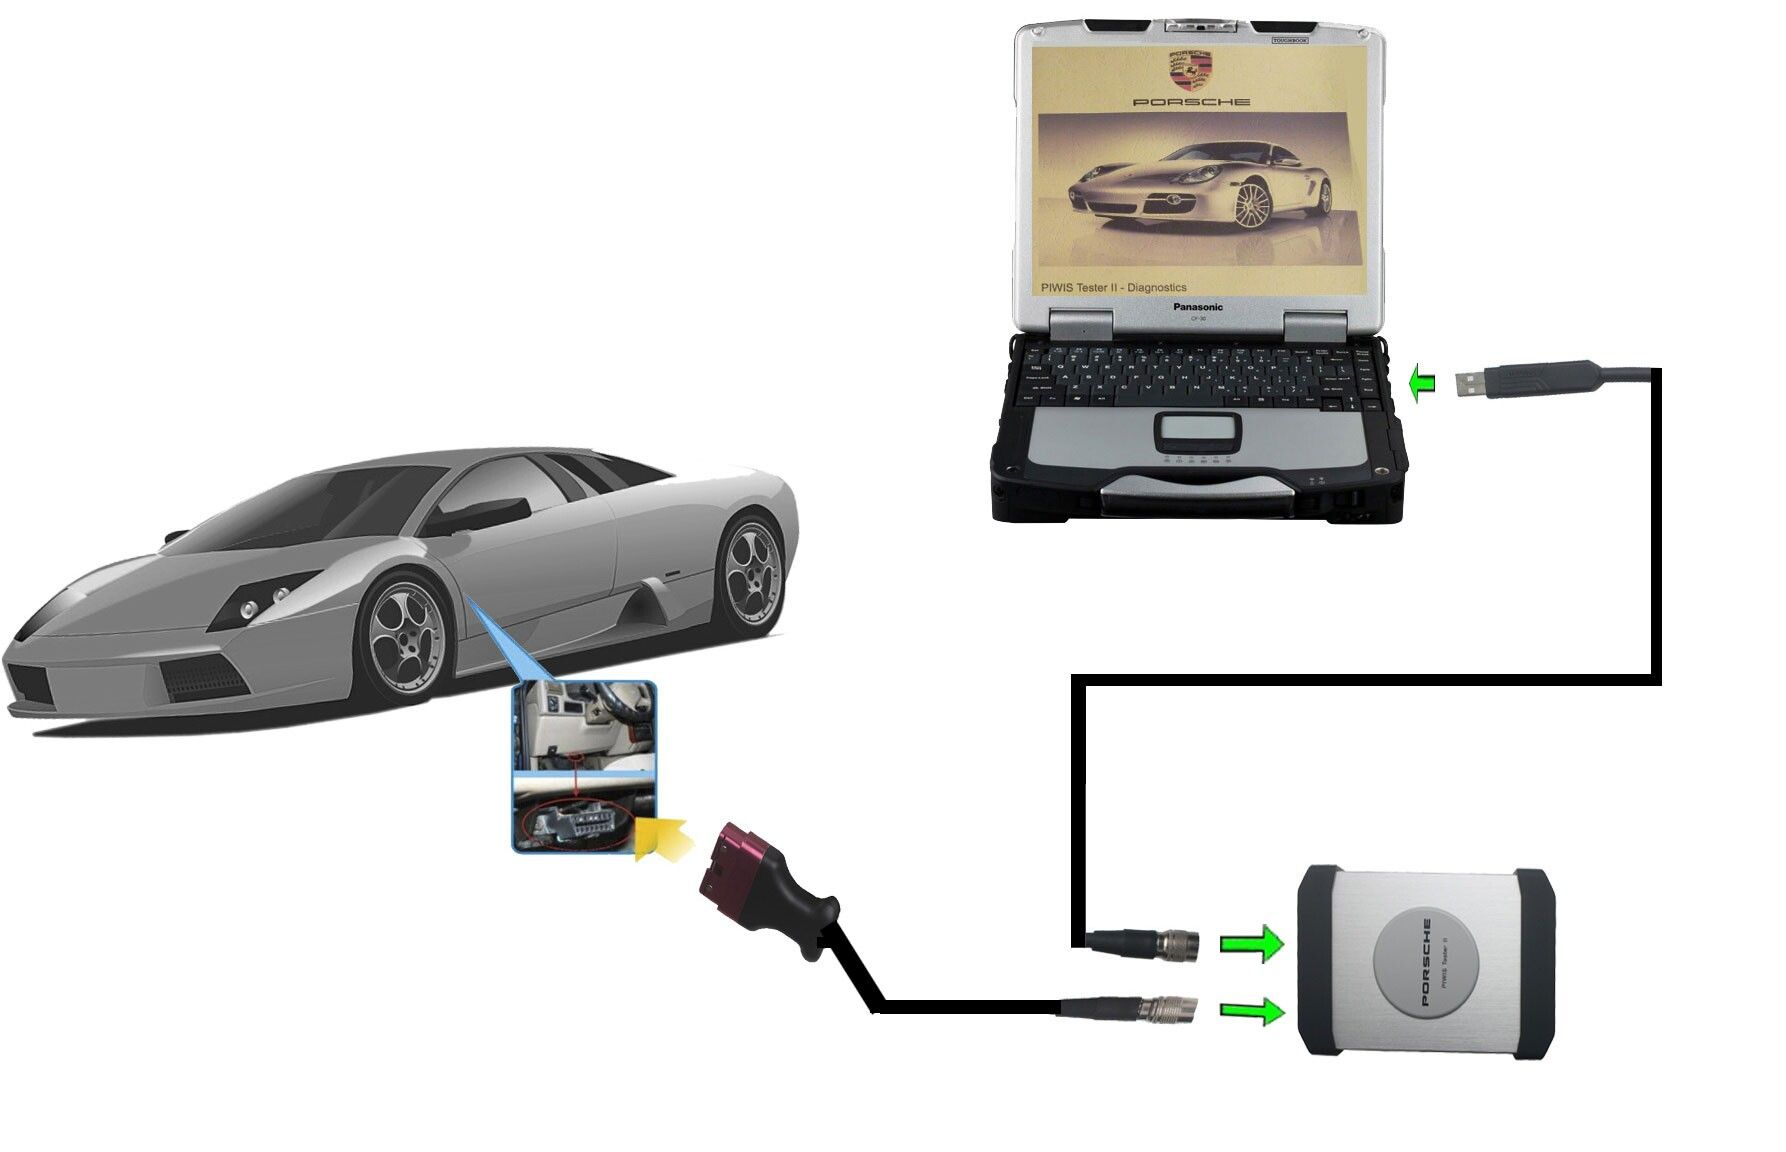 Best Quality Porsche Piwis Tester Ii 137 Pinterest How To Build Connection For Display